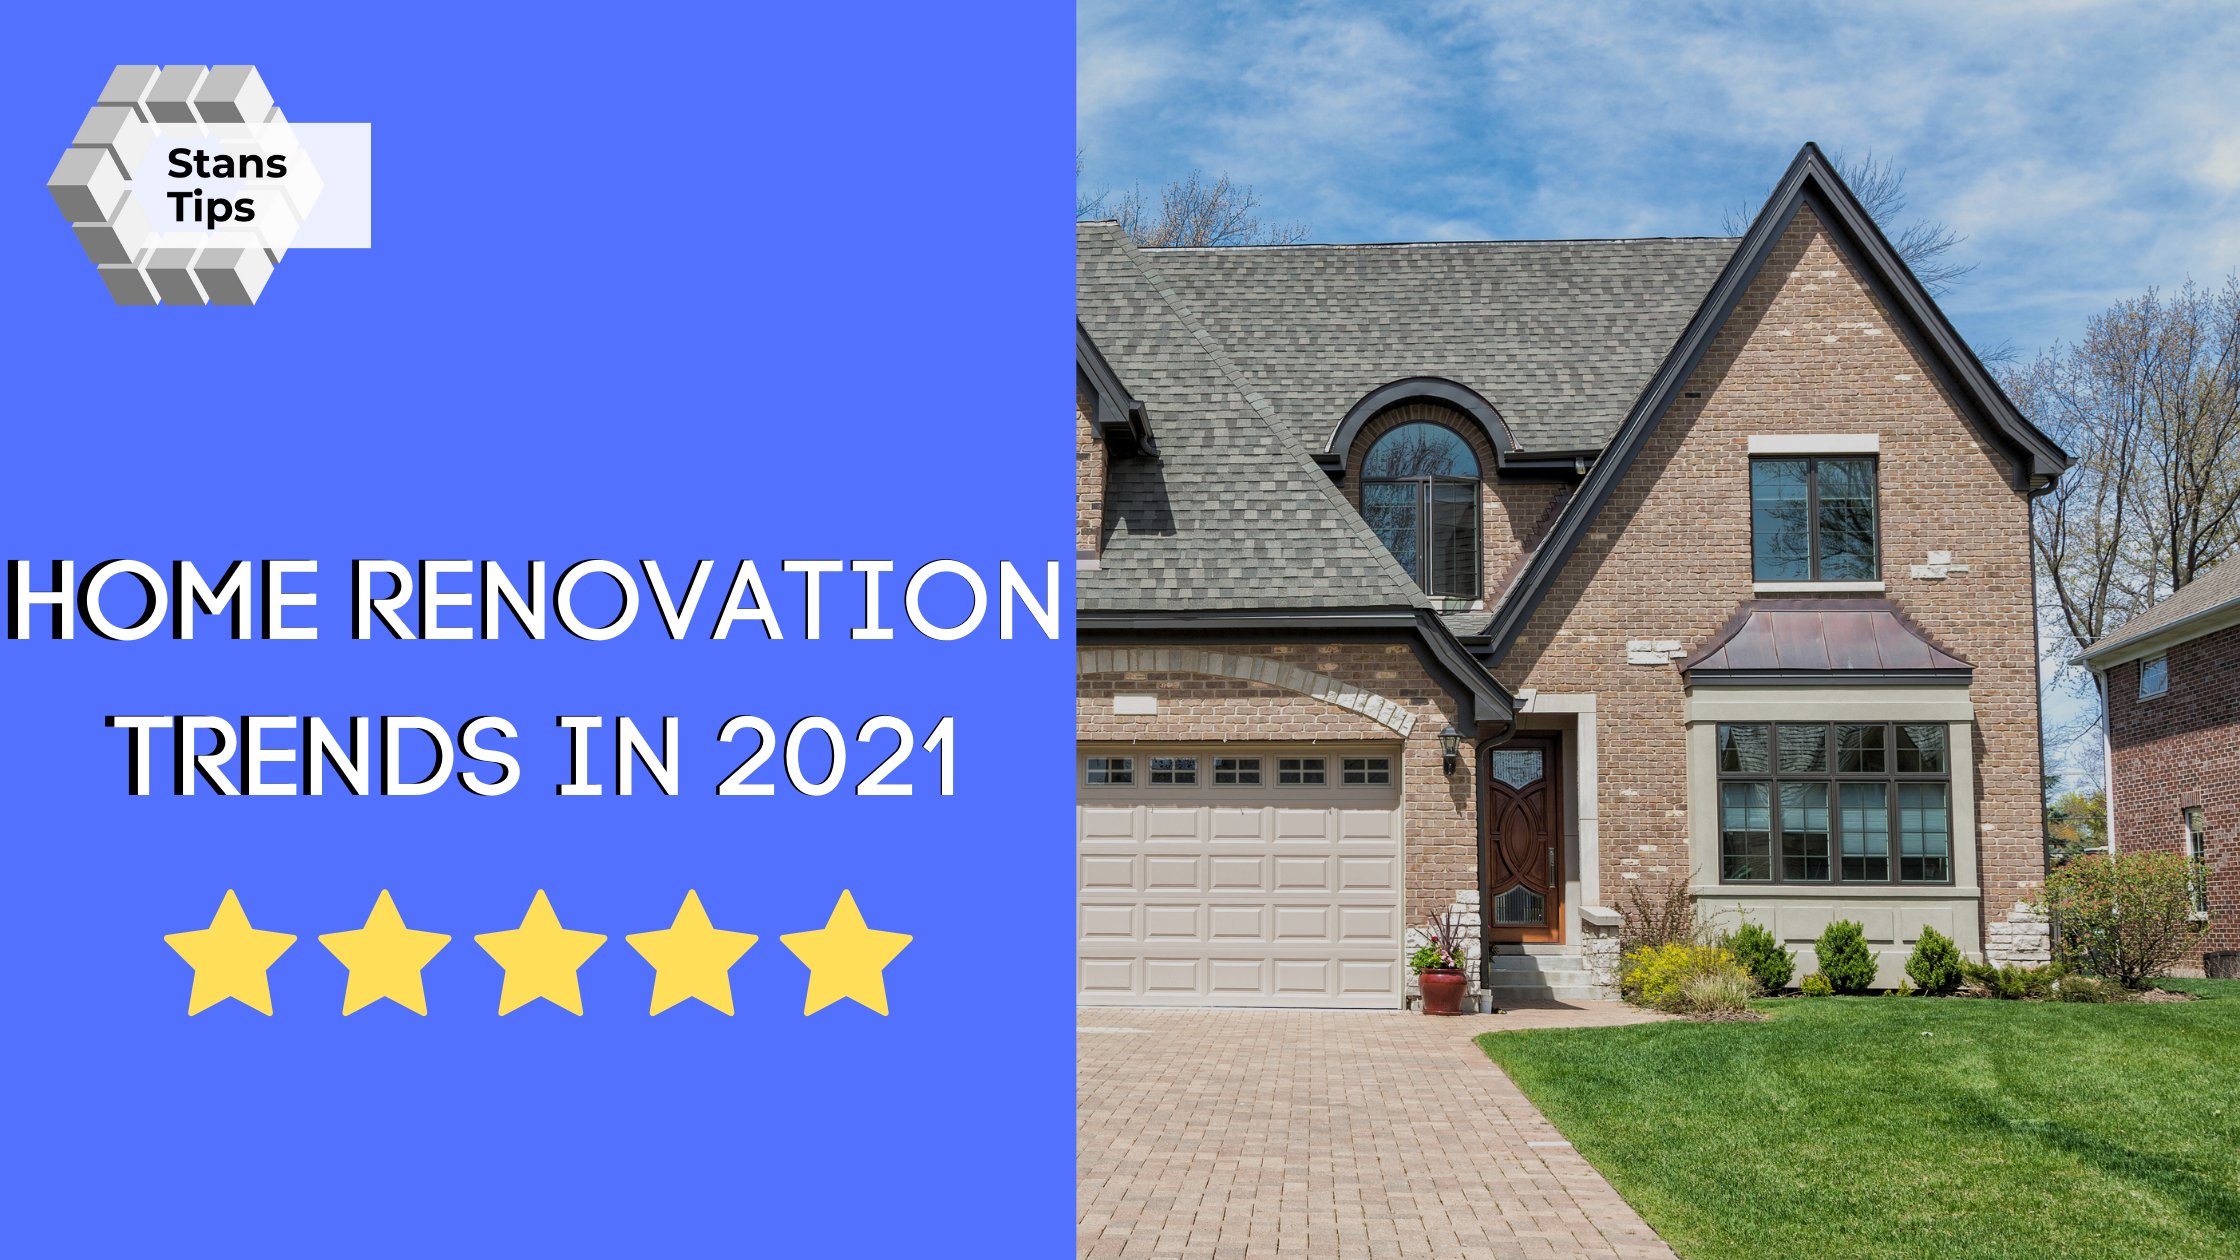 Home renovation trends in 2021